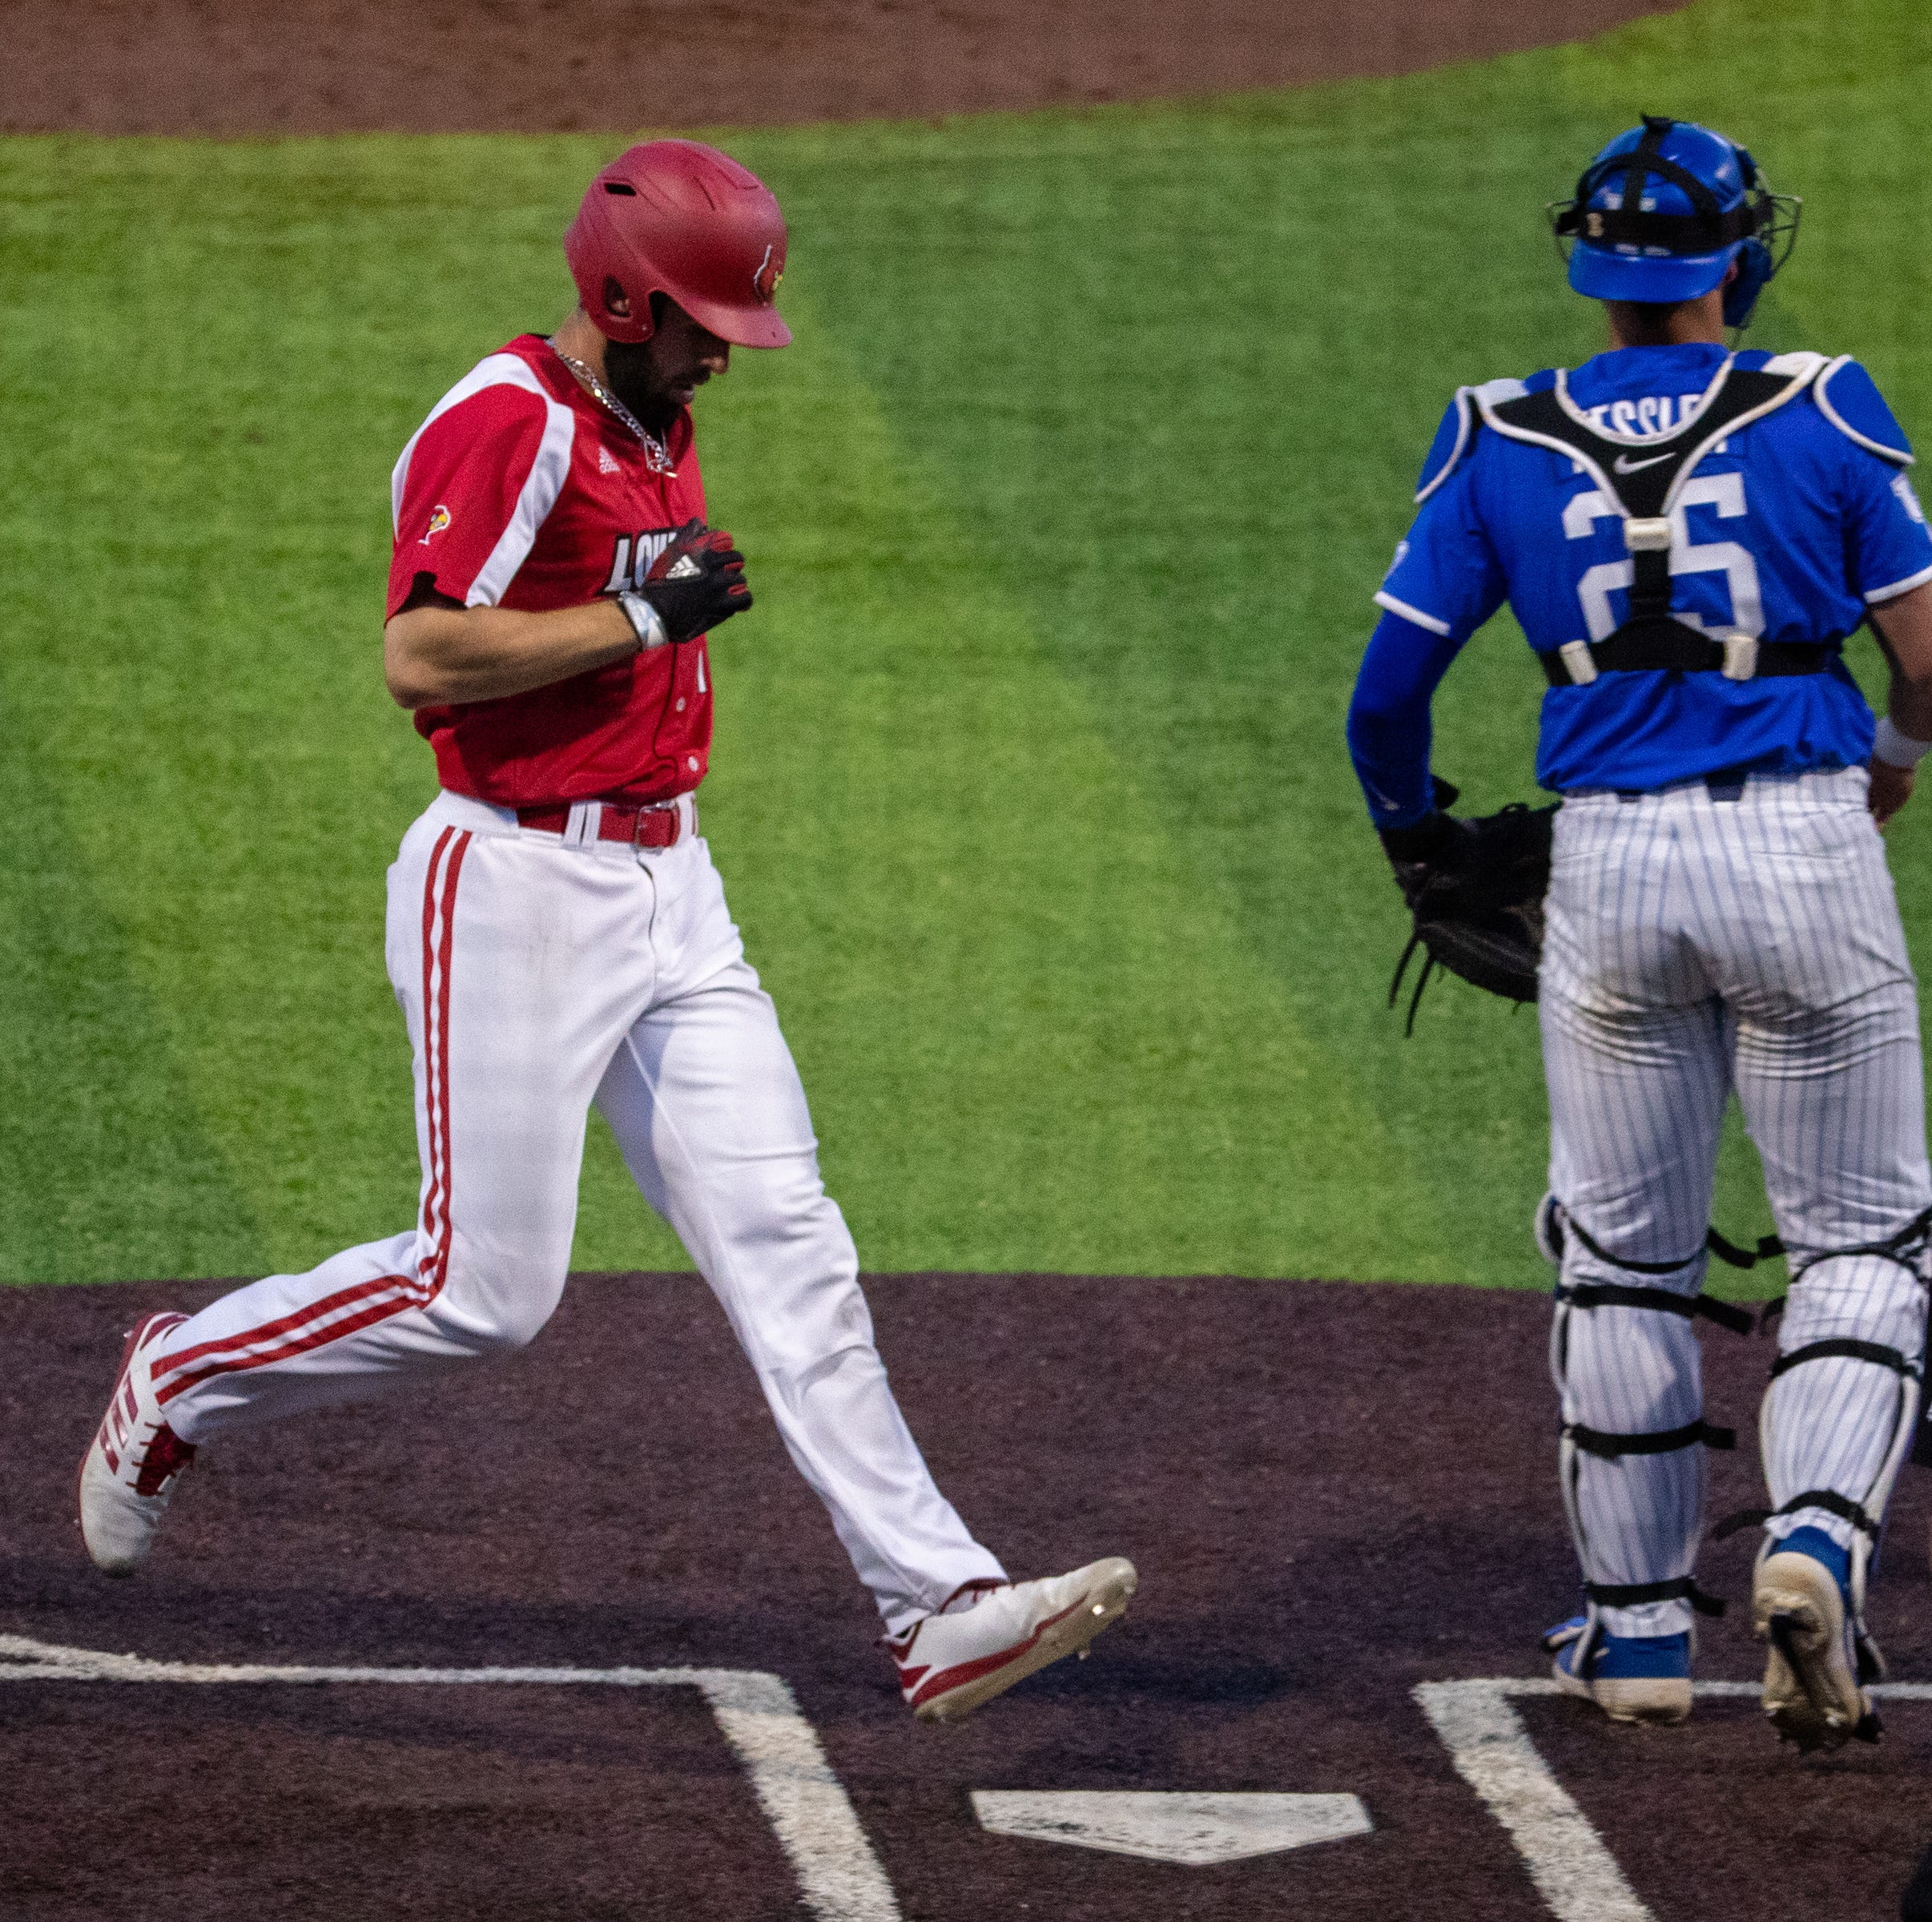 Freshman slugger a steady force in Louisville baseball's lineup